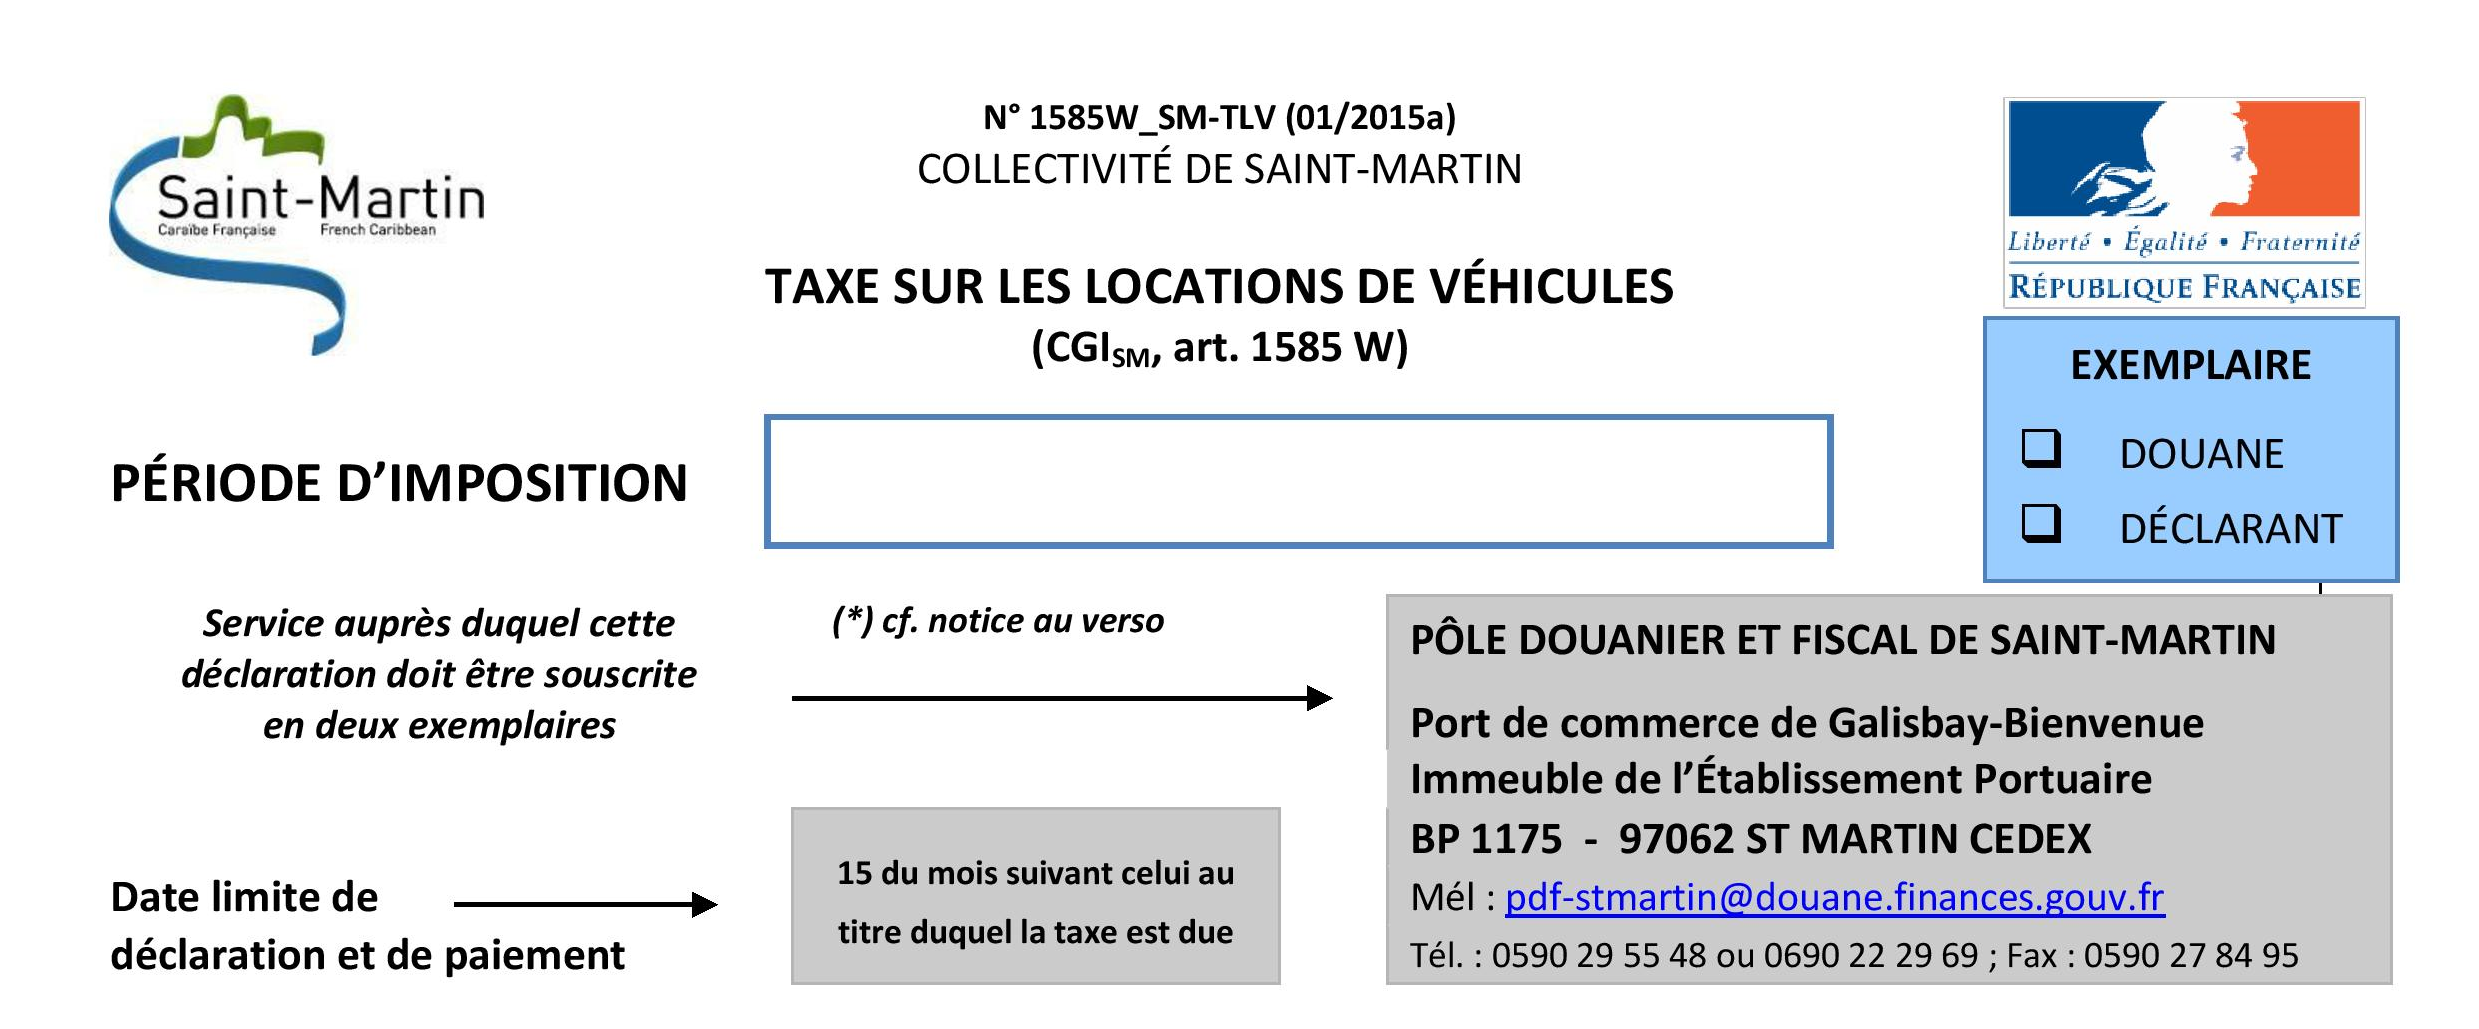 Community of saint martin french west indies for Motor vehicle service notification